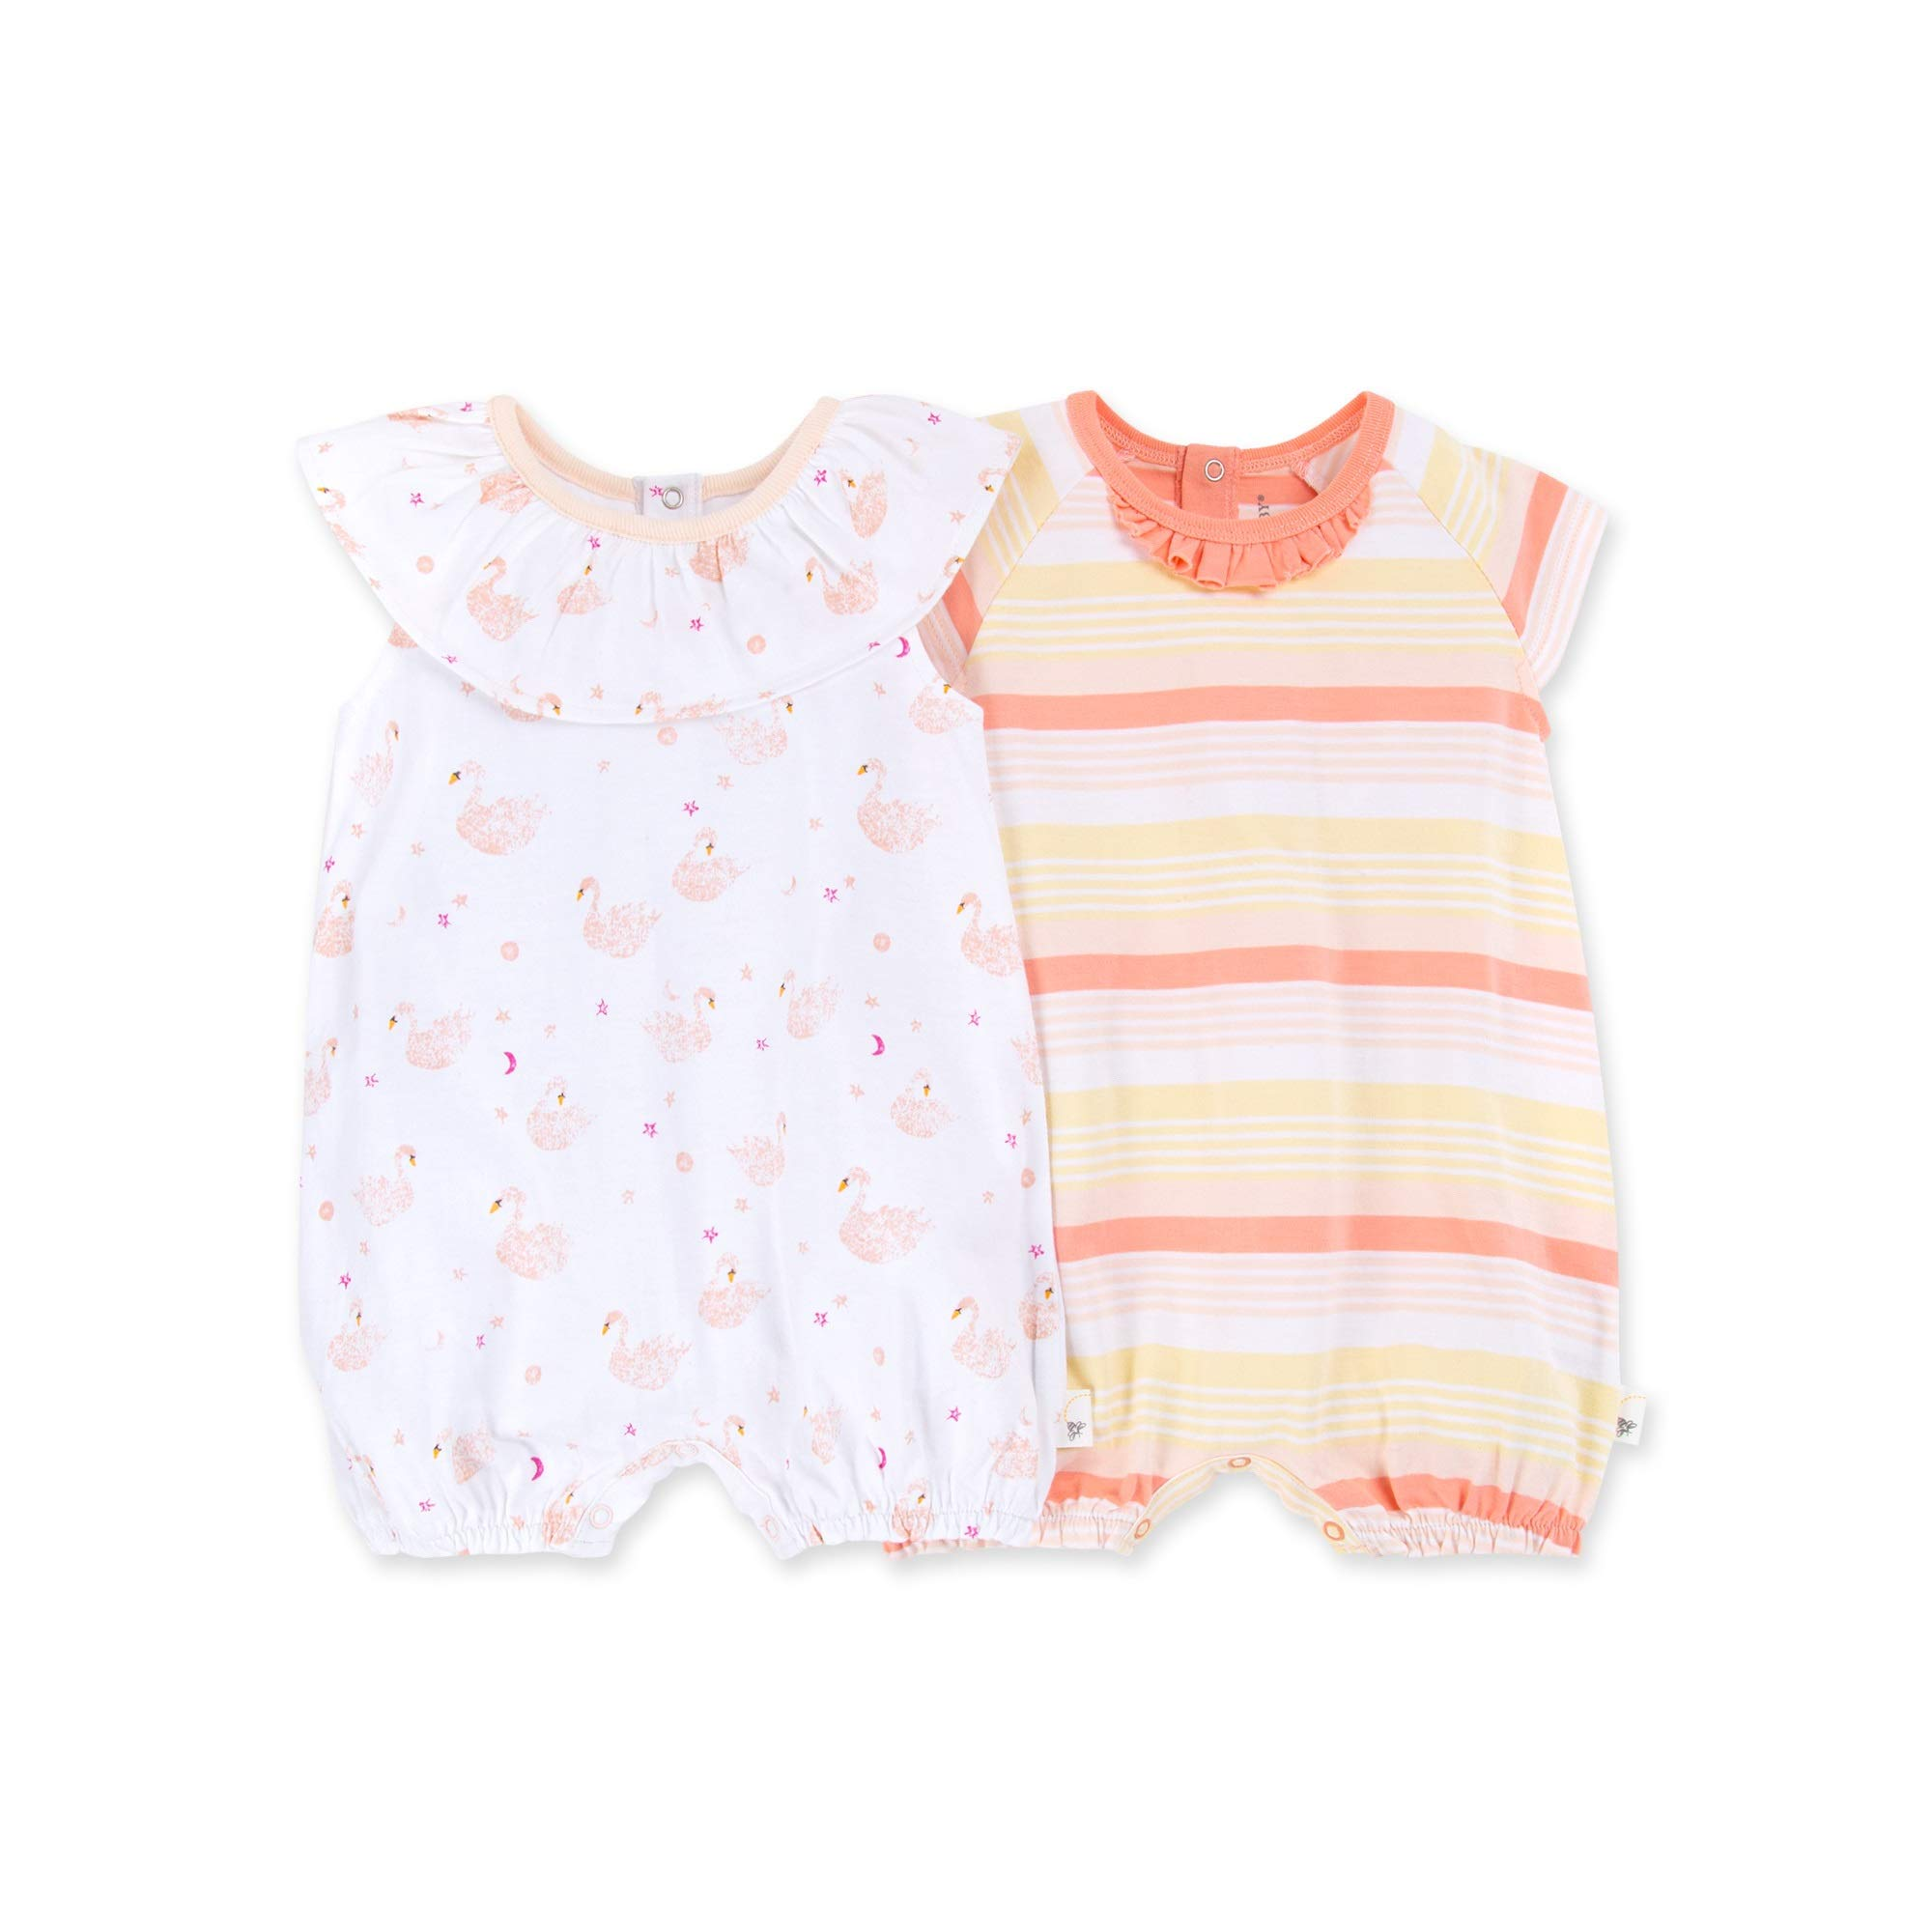 Set of 2 Bubbles Burts Bees Baby Baby Girls Rompers 100/% Organic Cotton One Piece Jumpsuits